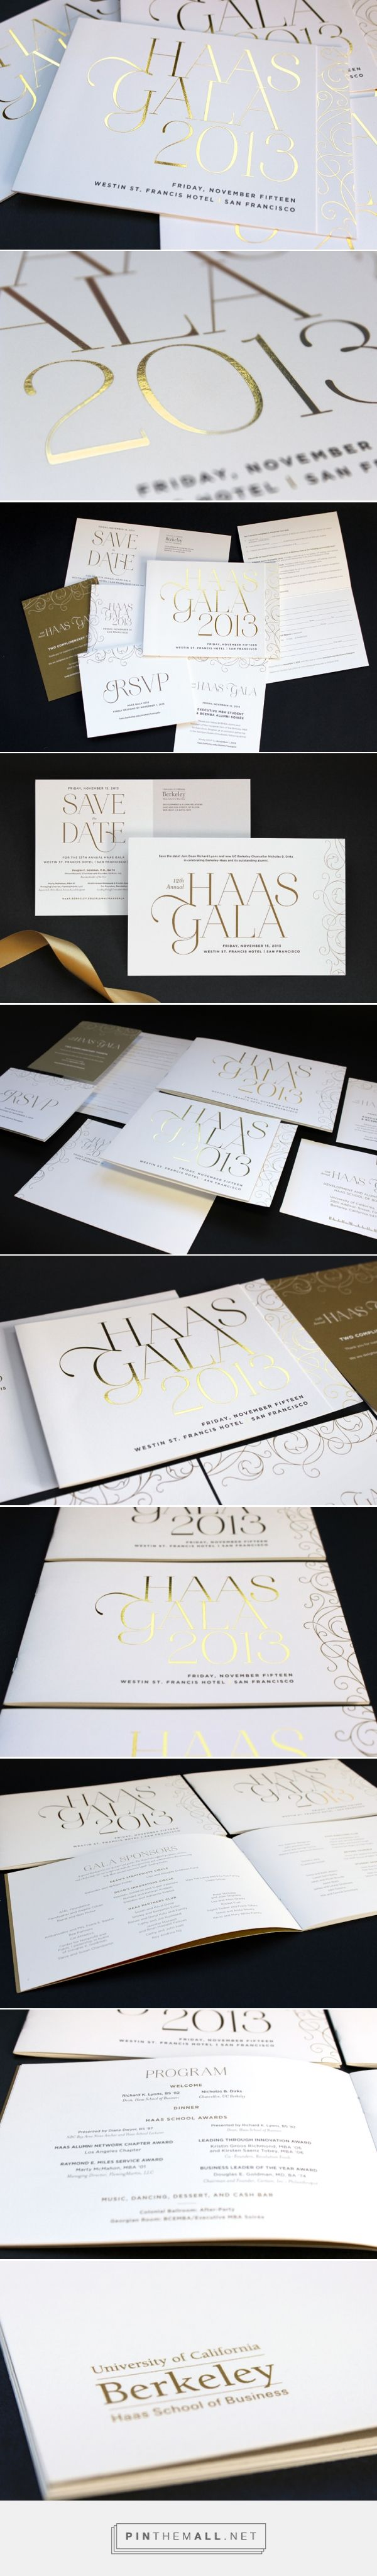 business event invitation templates%0A Haas Gala invitation suite  Gold foil  metallic ink  luxe cardstock    foilstamp  Event Invitation DesignCorporate